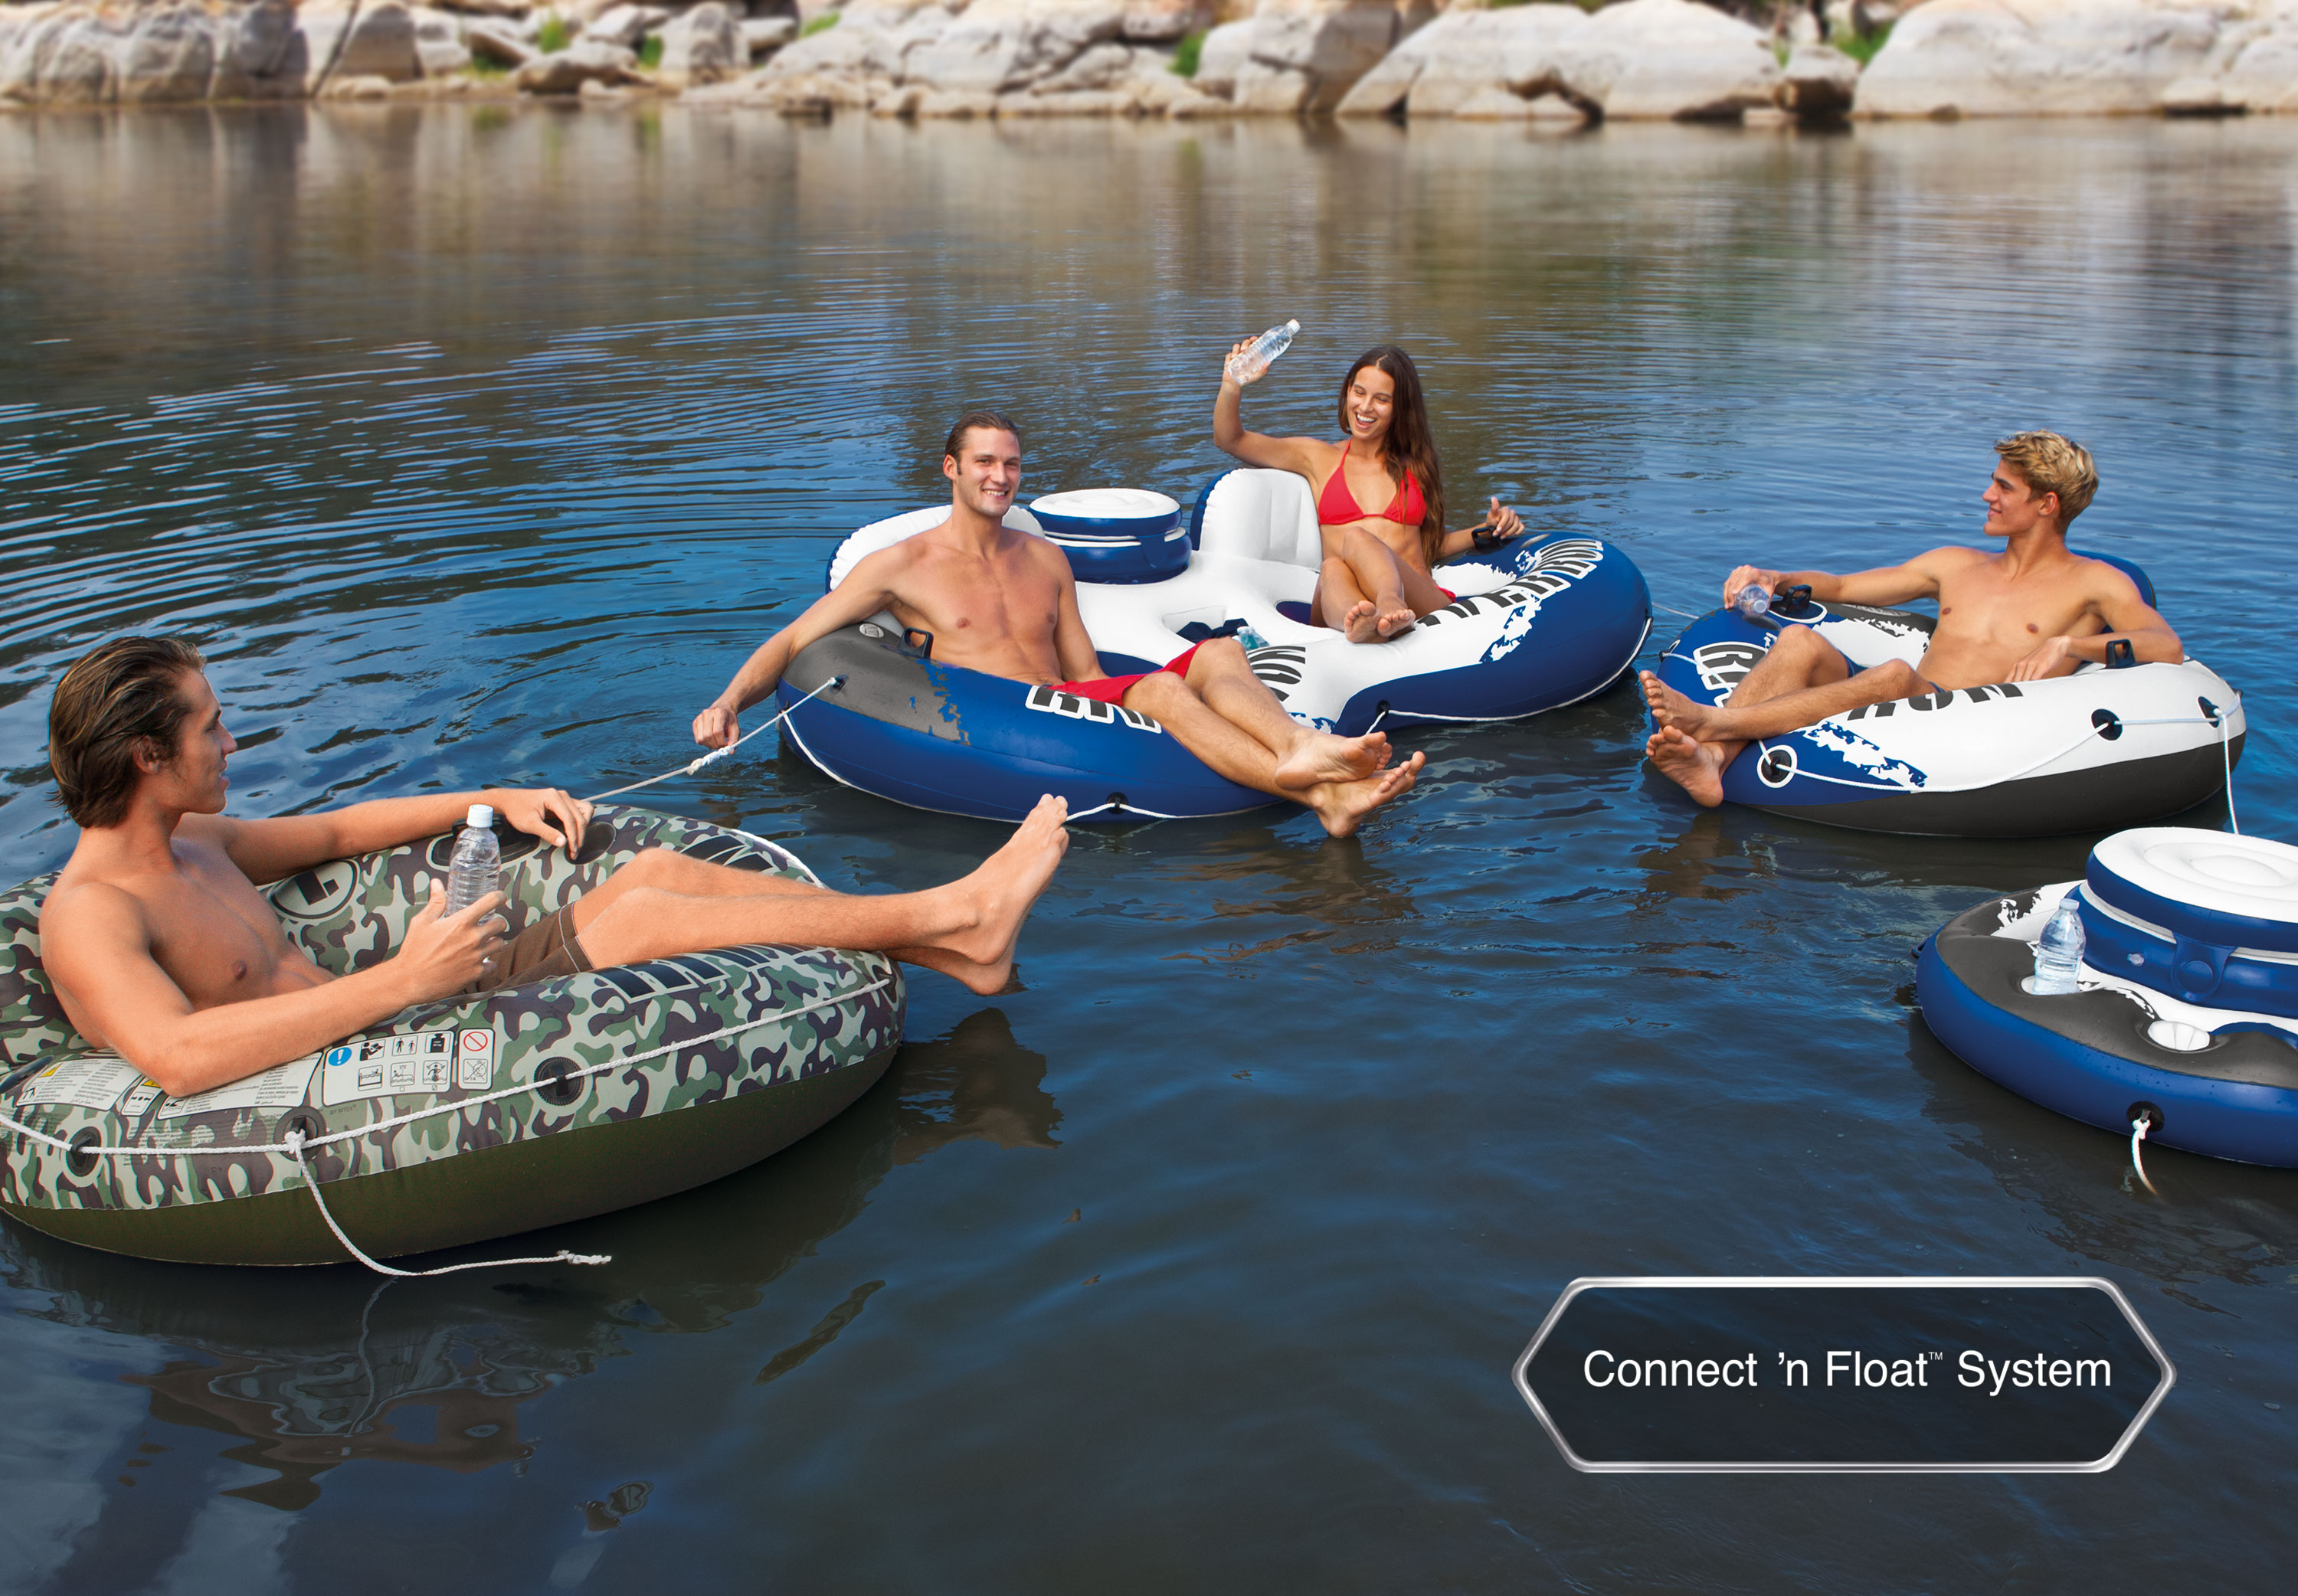 Water Floats And Tubes ~ Intex river run ii inflatable person pool tube float w